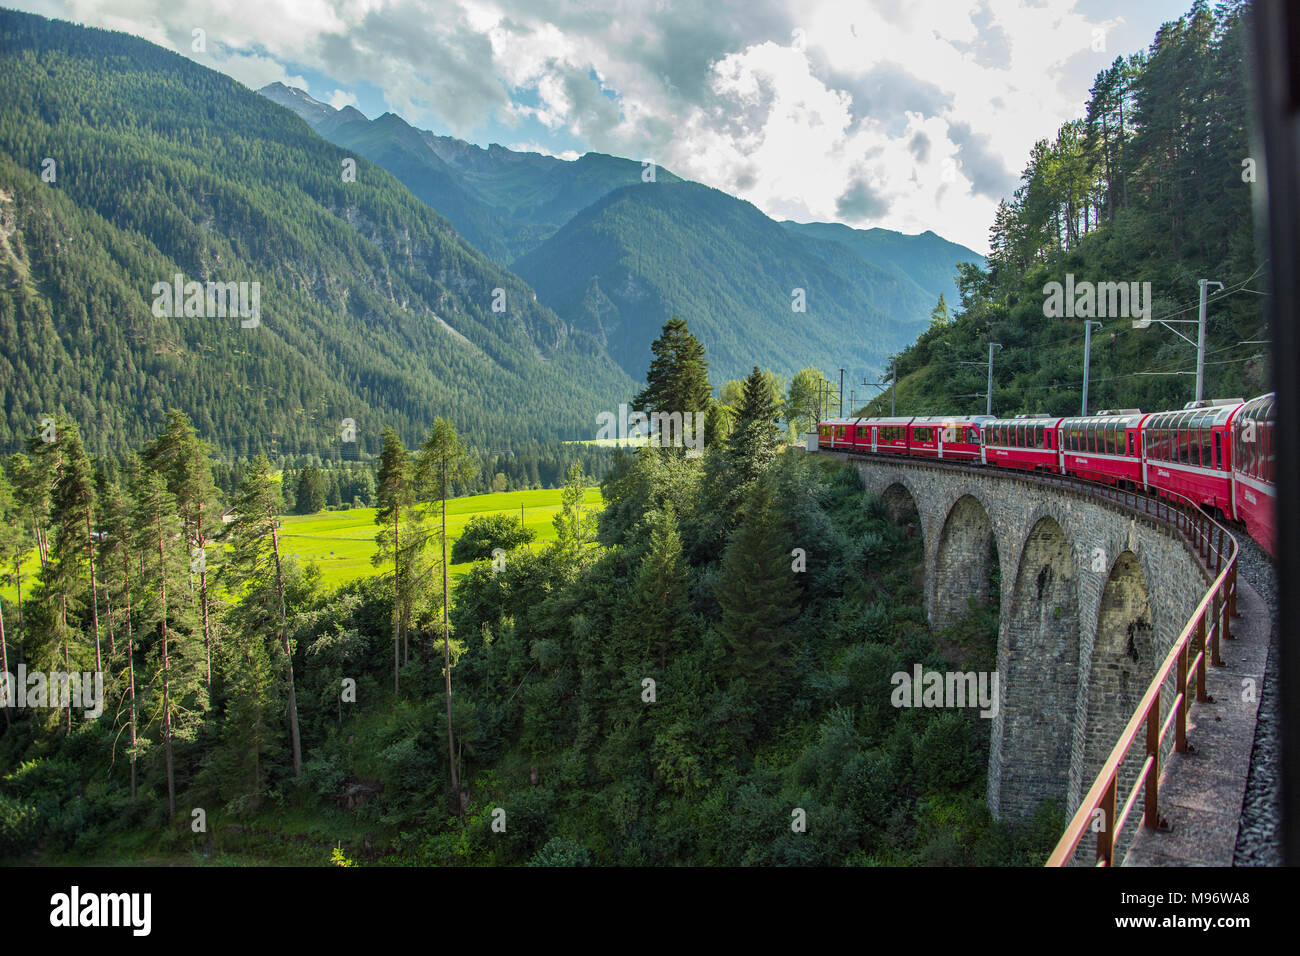 Bernina Express Train Travels Through Swiss Alps Over Viaducts - Stock Image